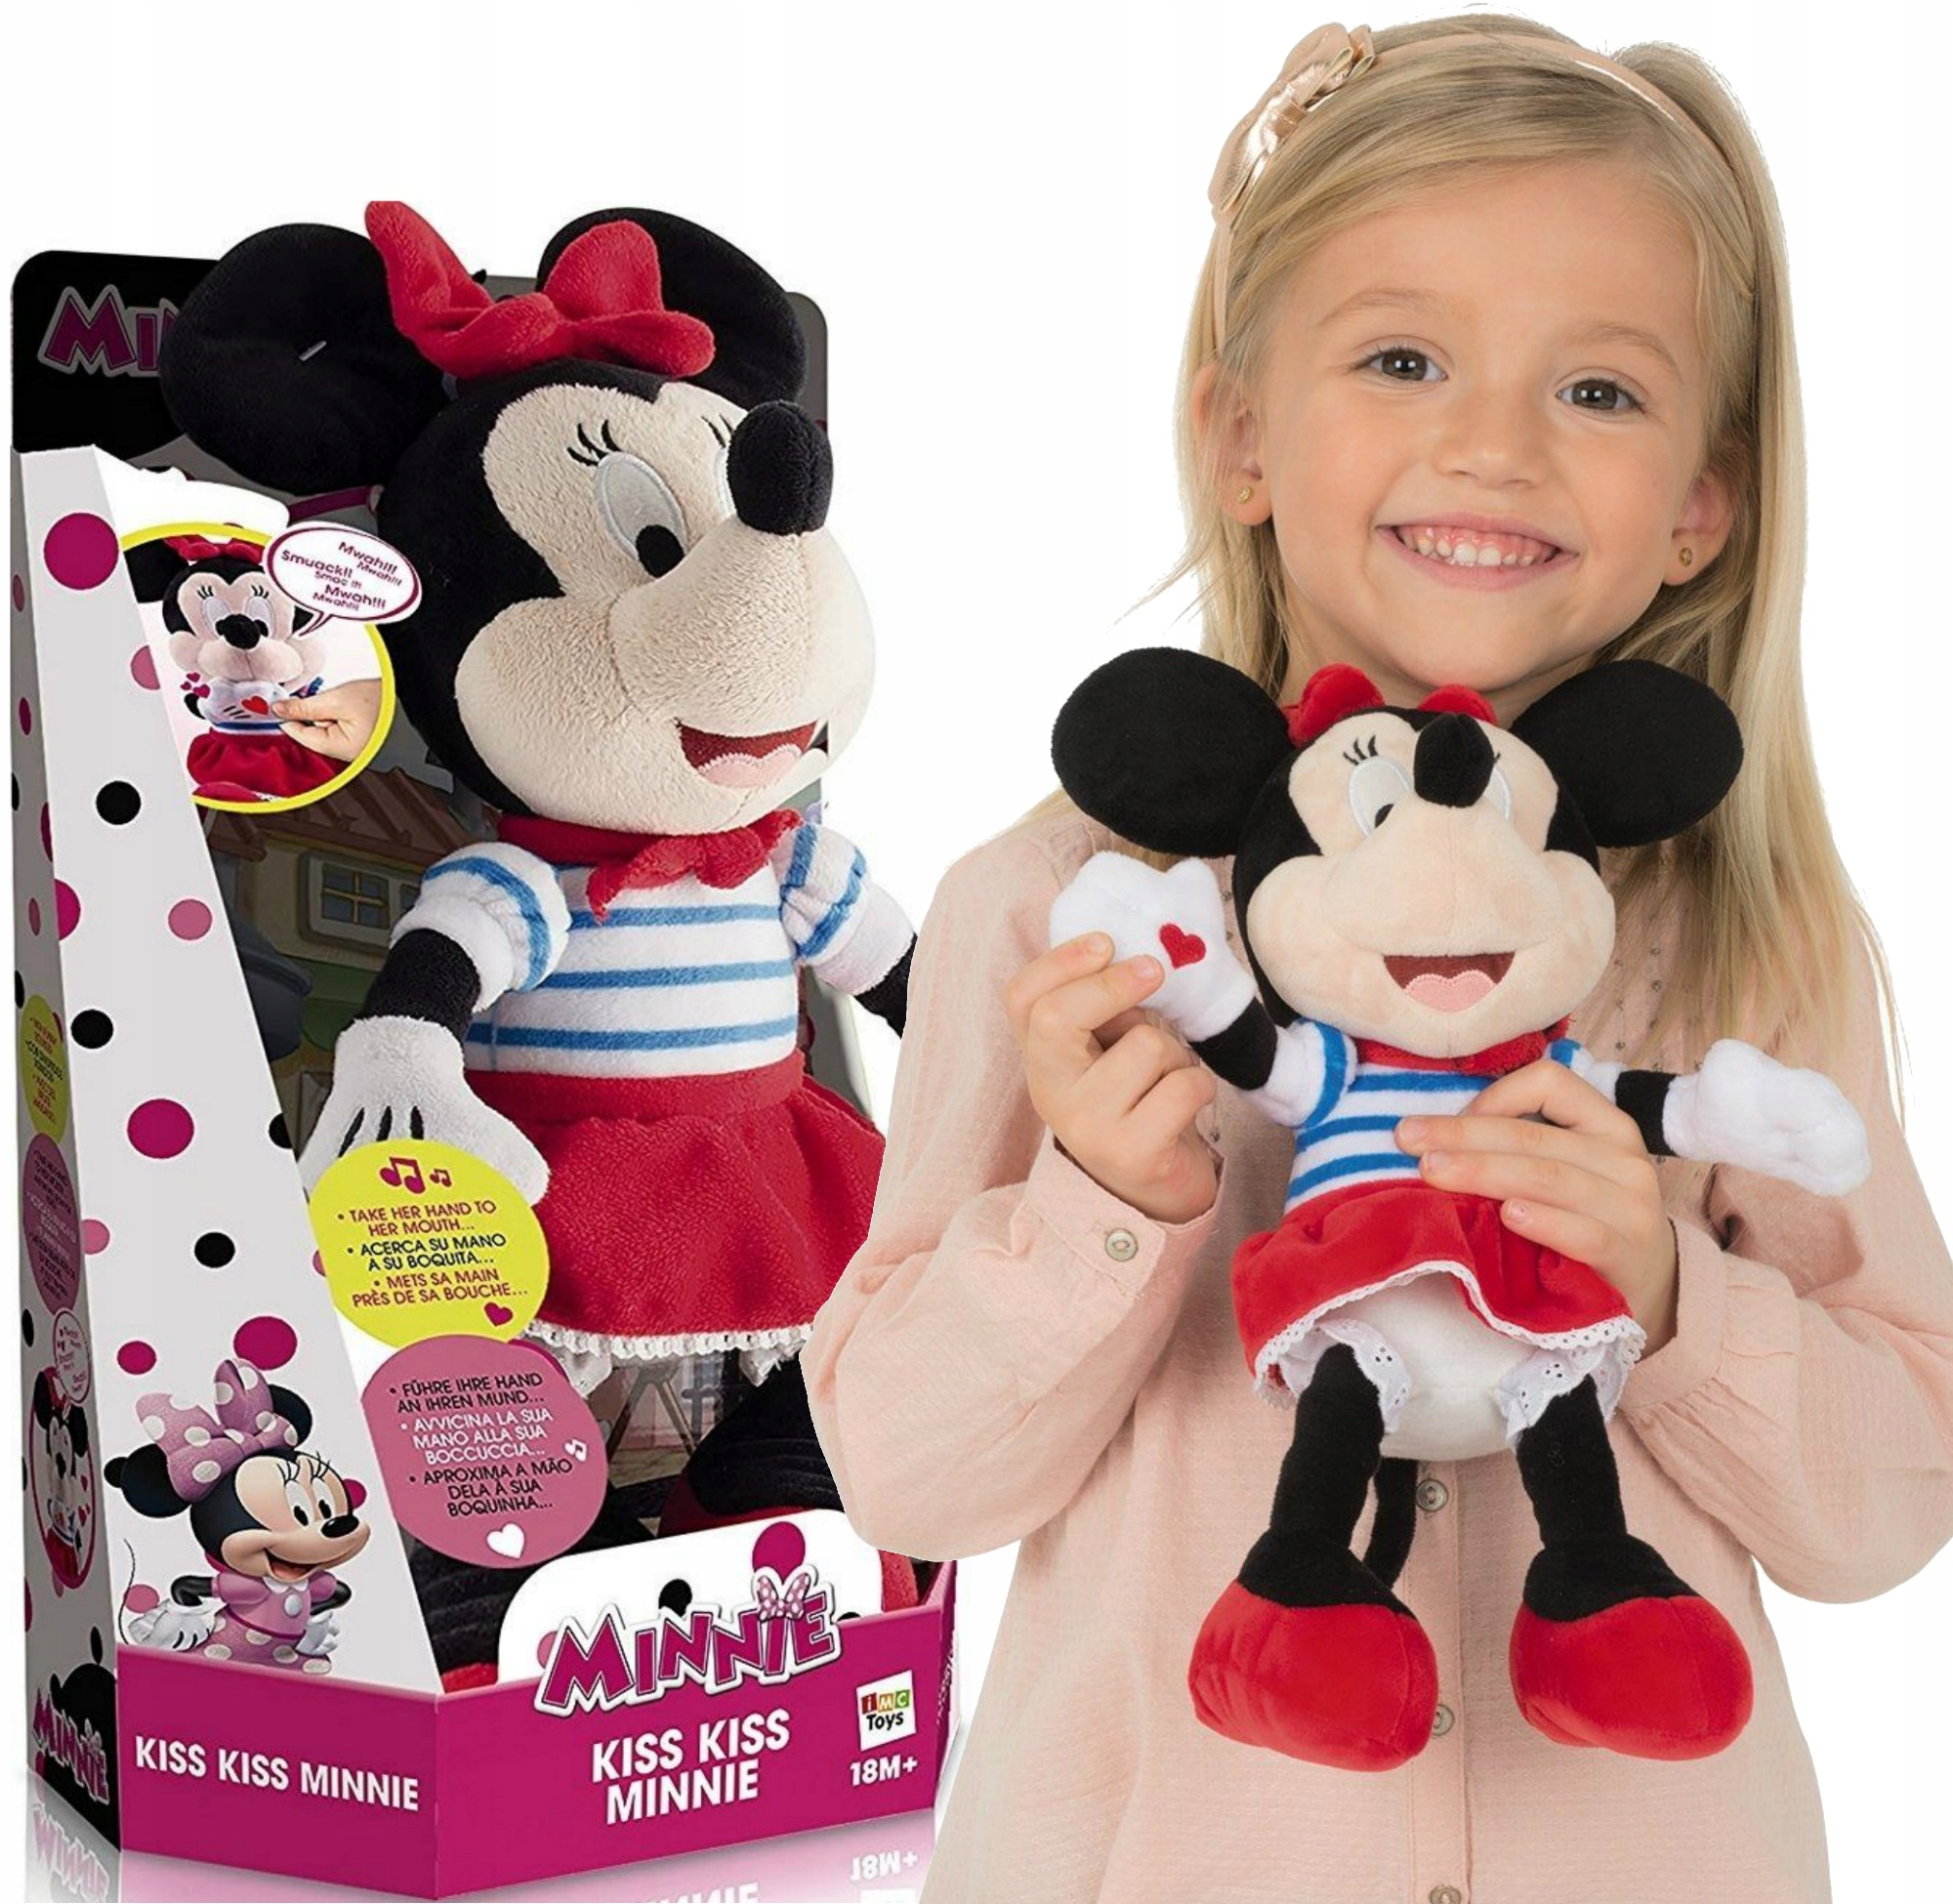 MYŠKA MINNIE MINI MASCOT DÁVA PLNÚ DISNEY